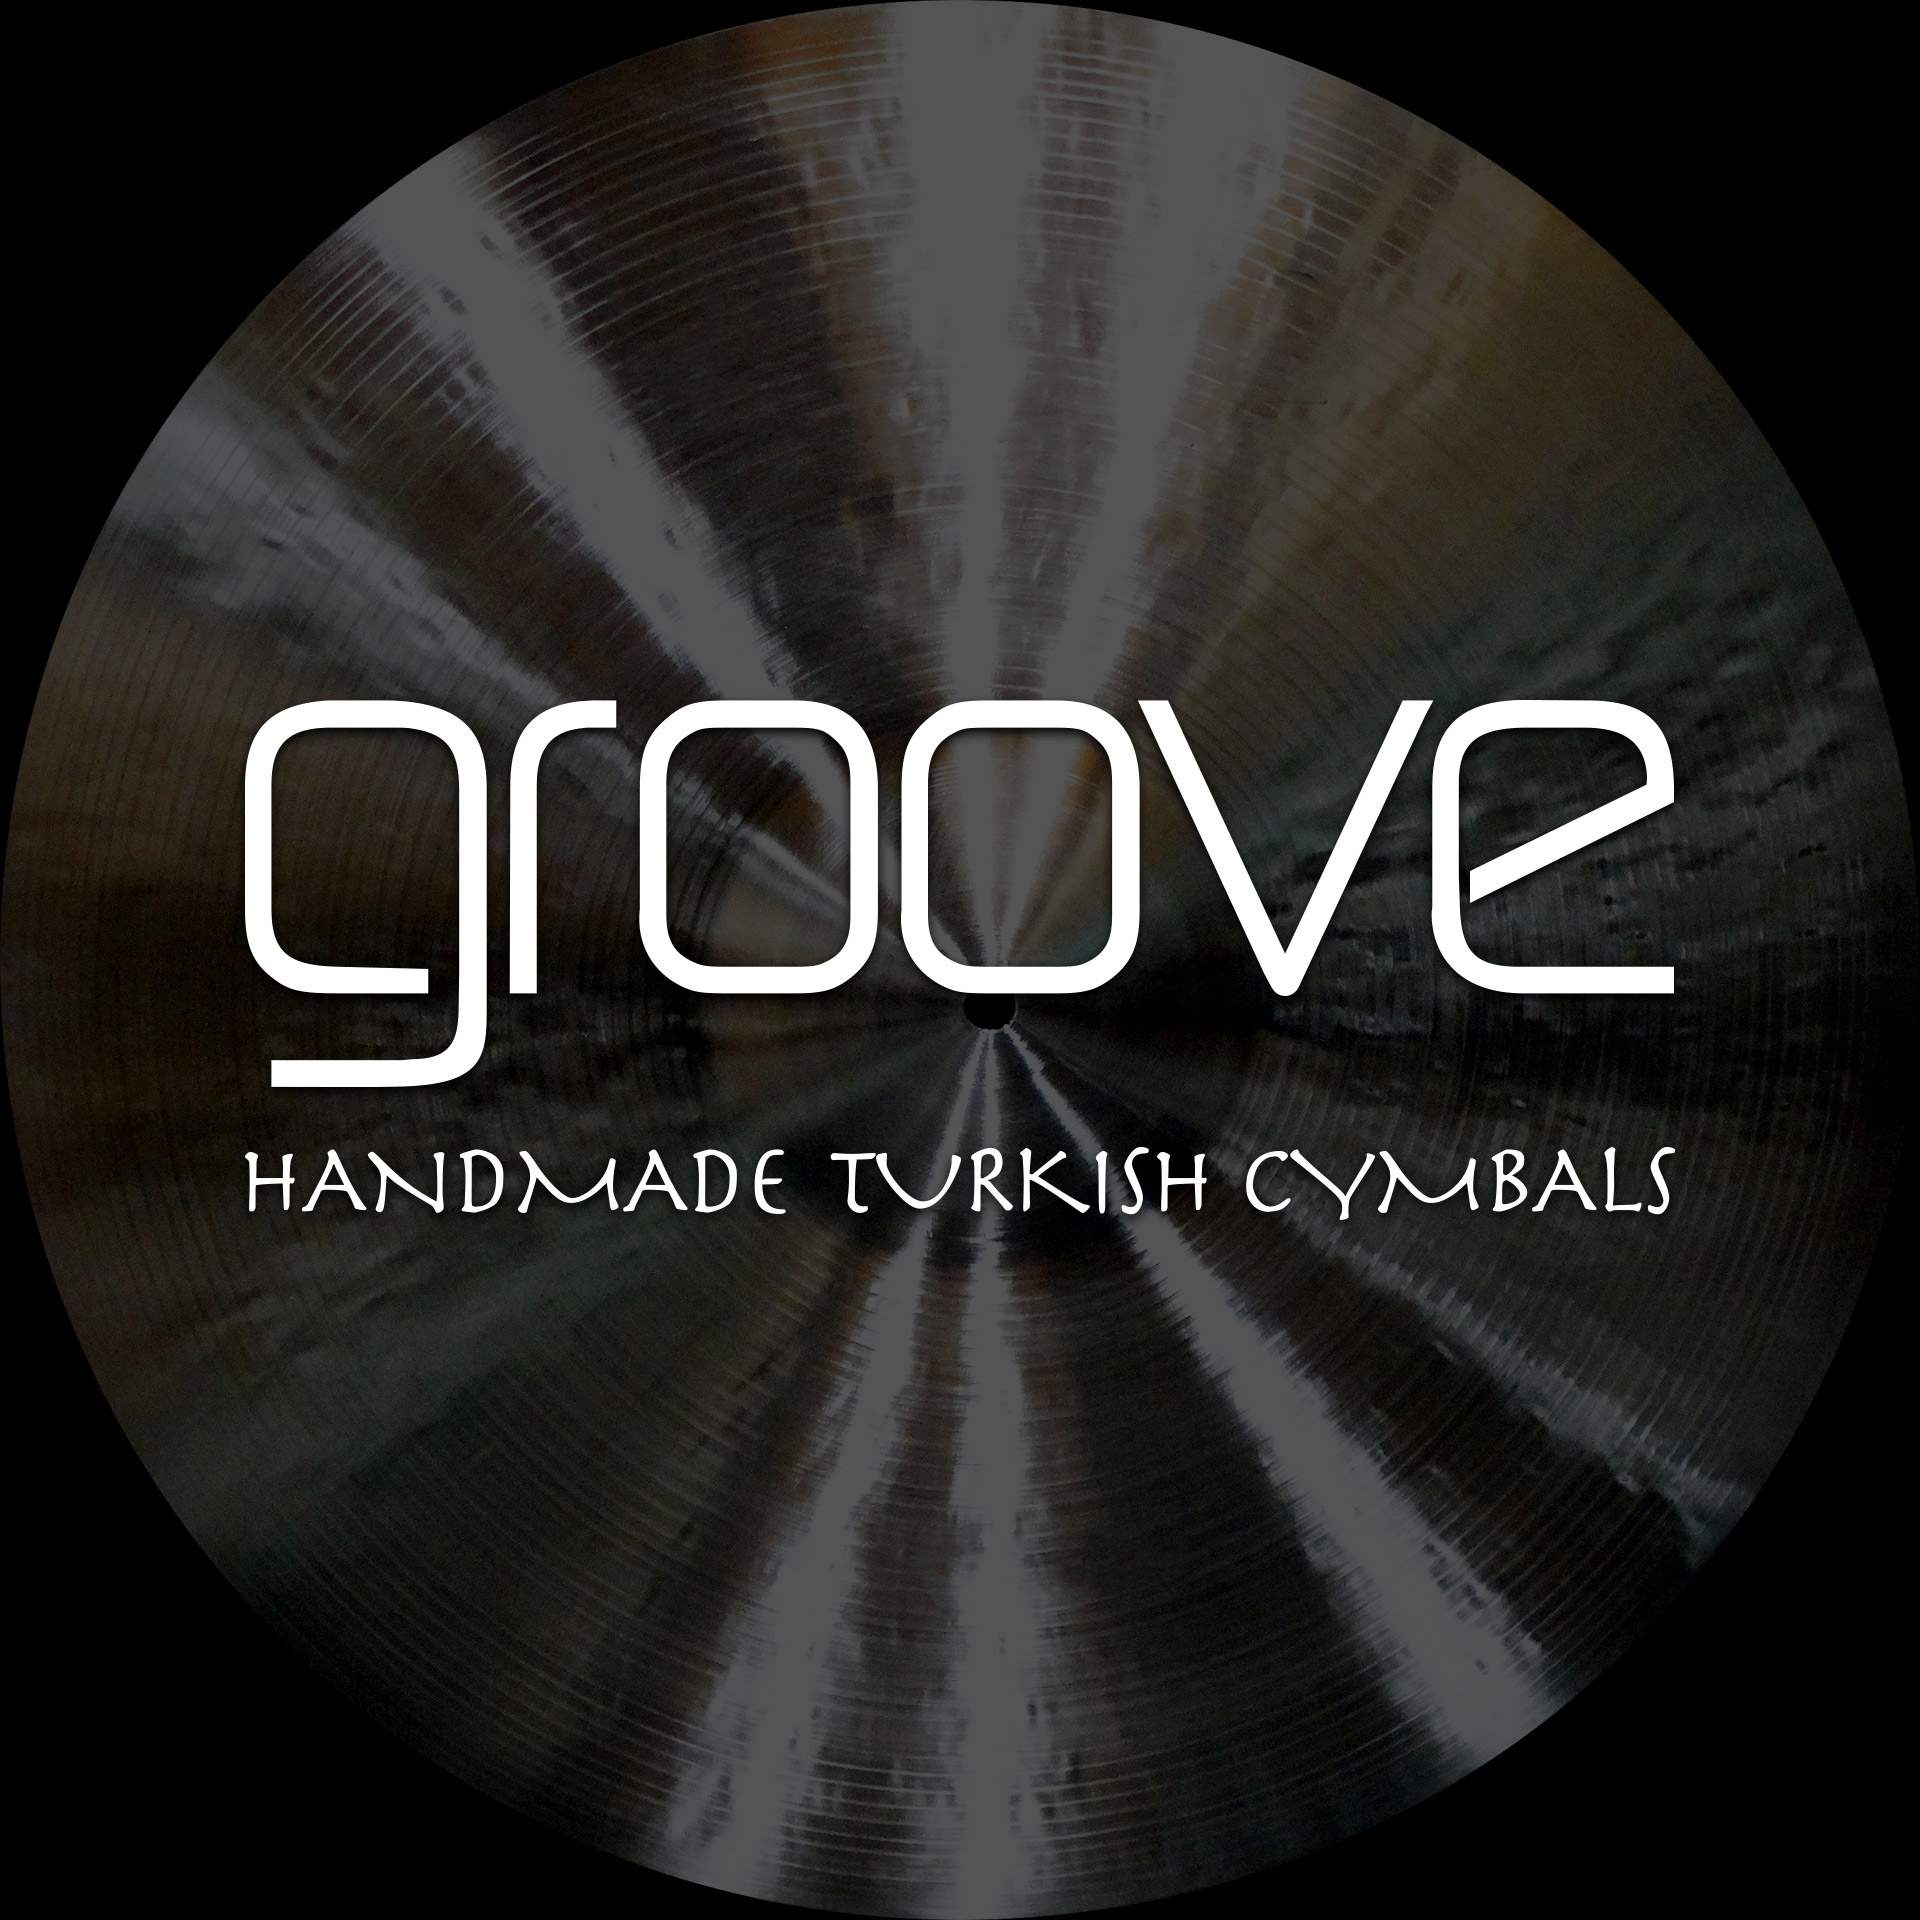 groovecymbals